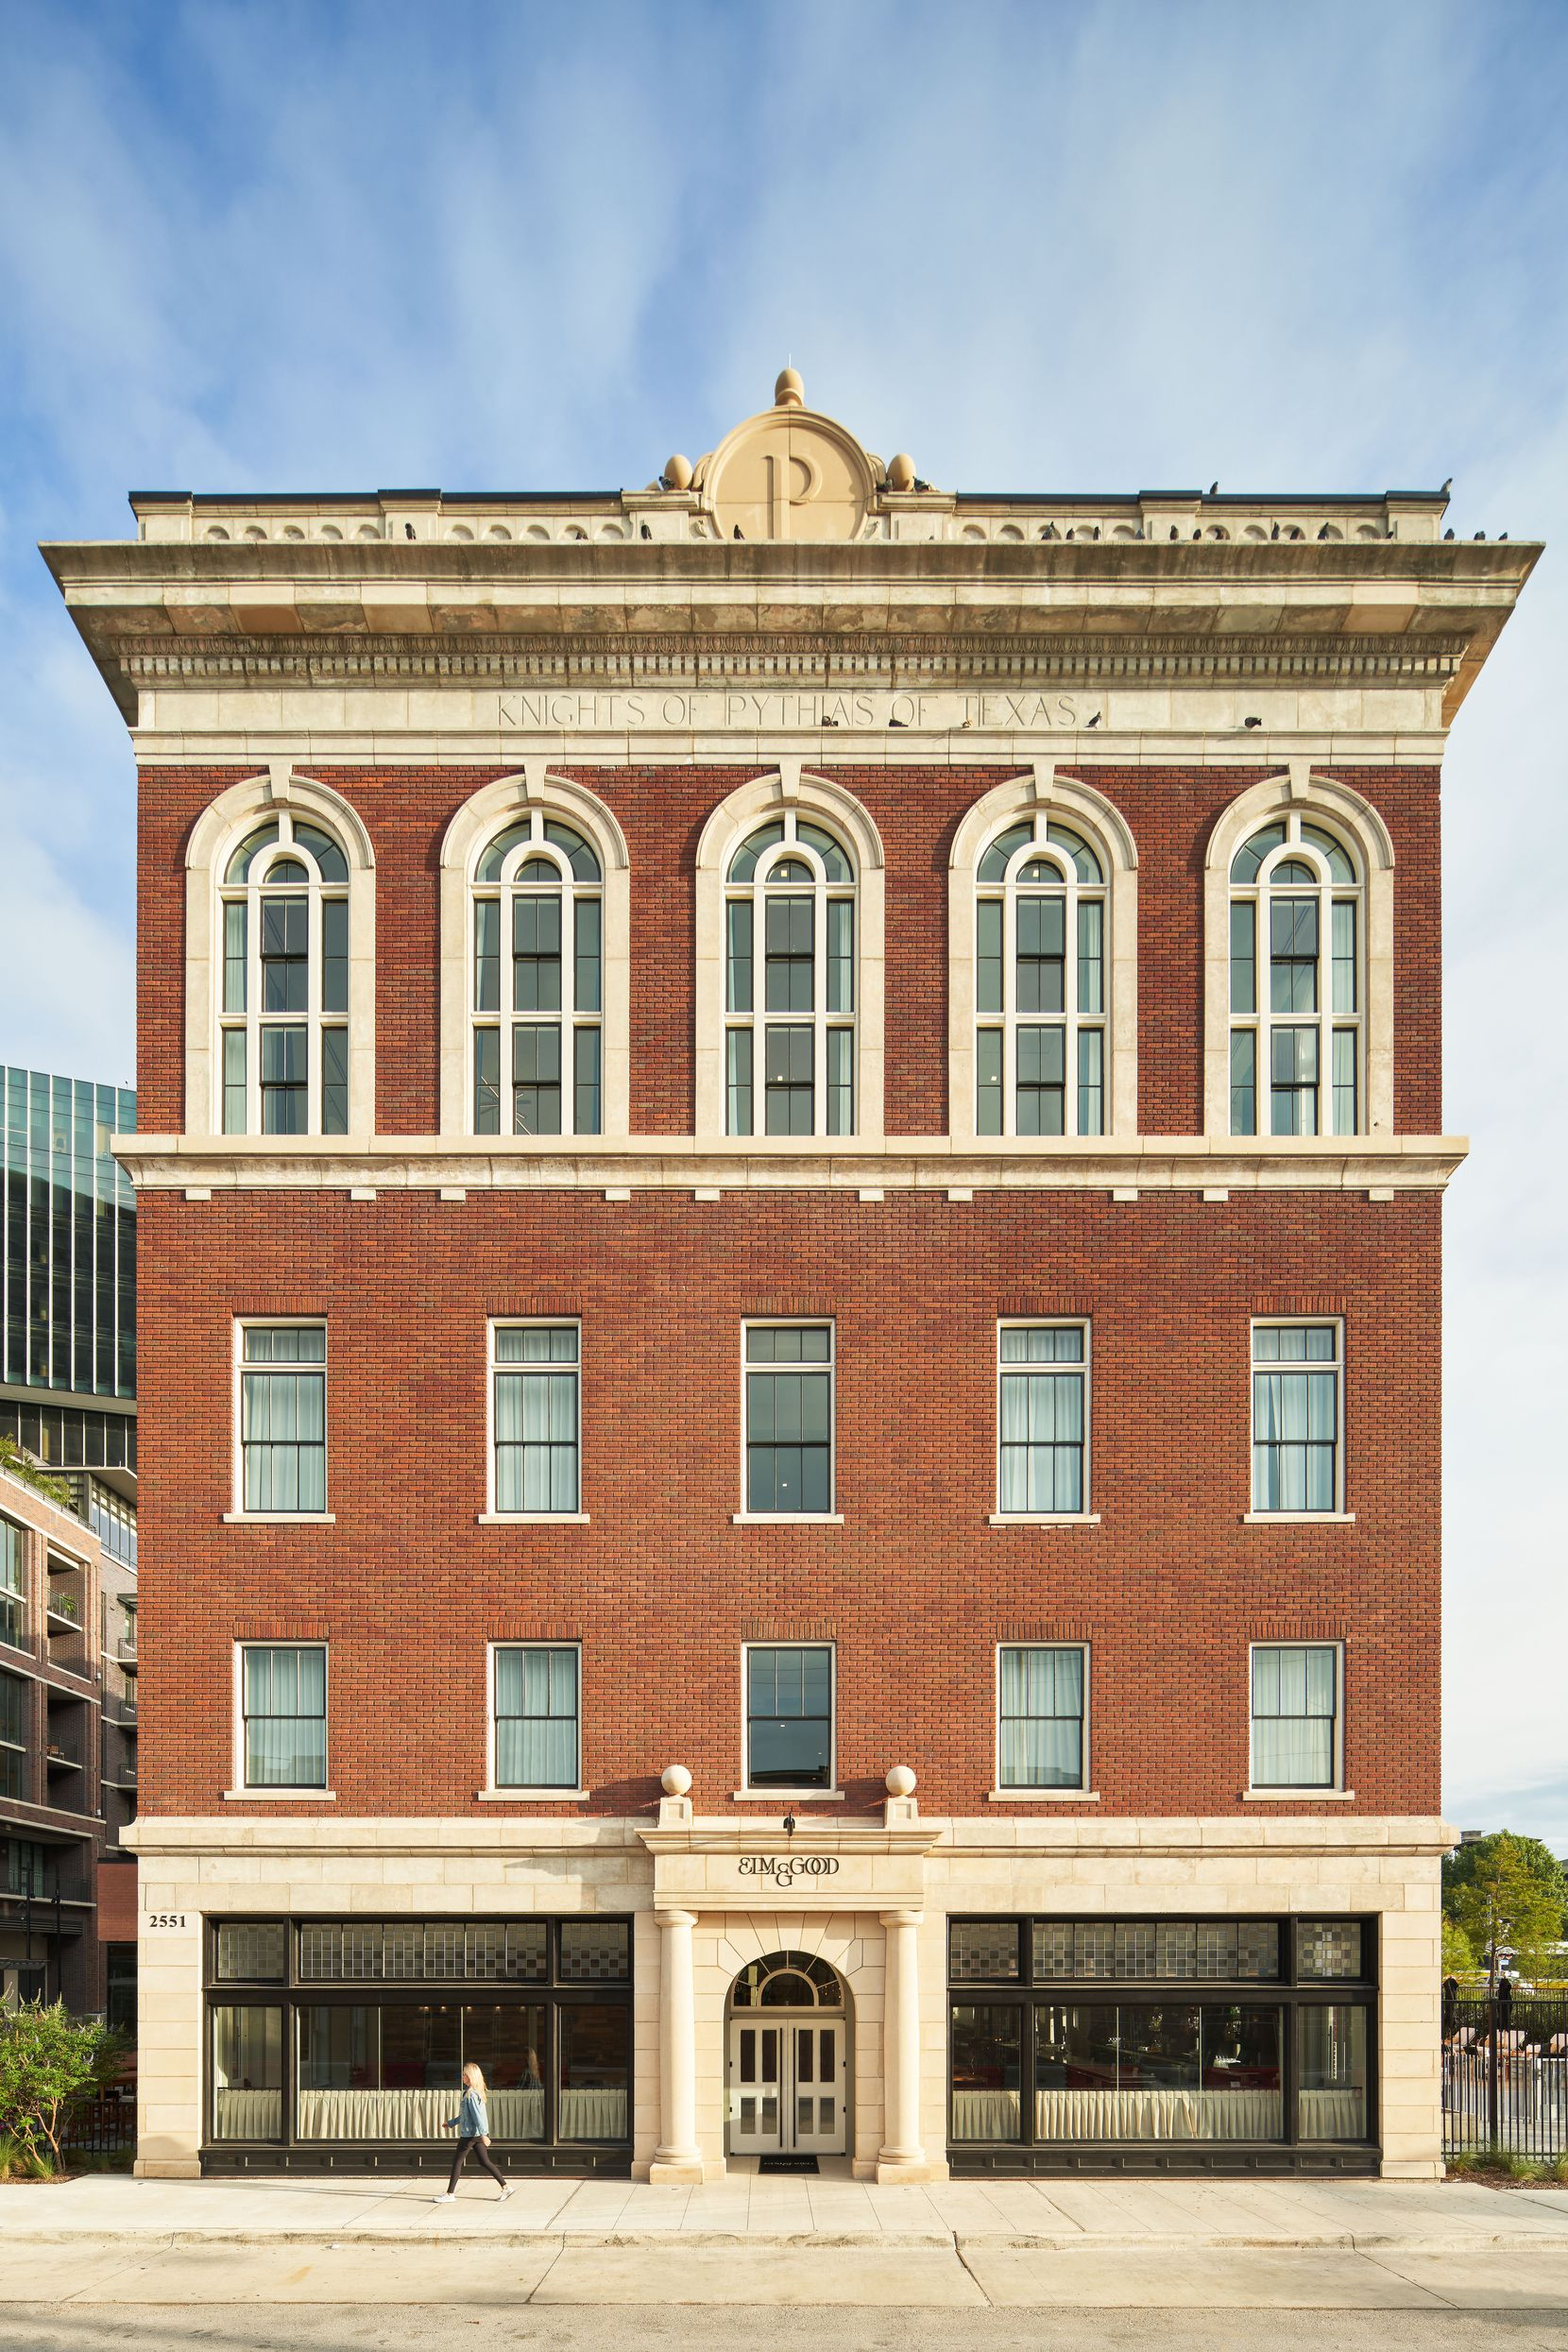 The red brick exterior of the former Knights of Pythias Temple has been conscientiously restored. Deep Ellum has been subjected to such a paroxysm of luxury development that the advocacy group Preservation Dallas put it on this year's Most Endangered Historic Places list.